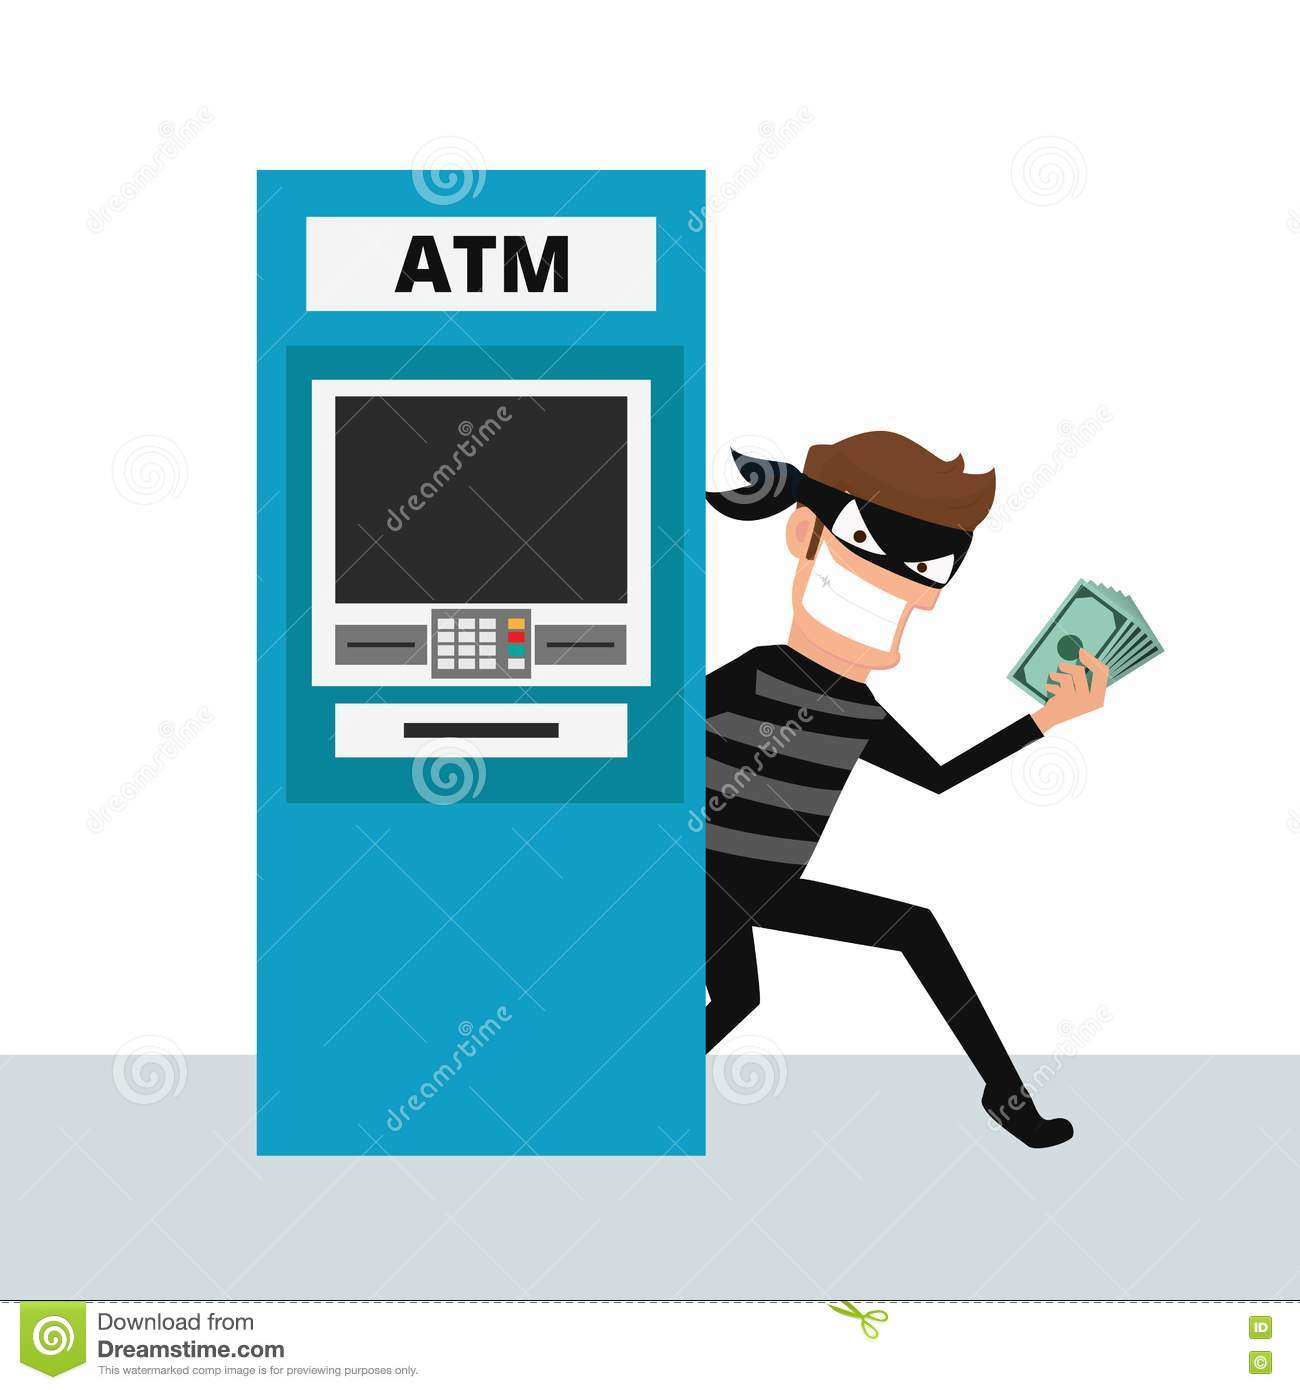 Atm machine hacking software free download